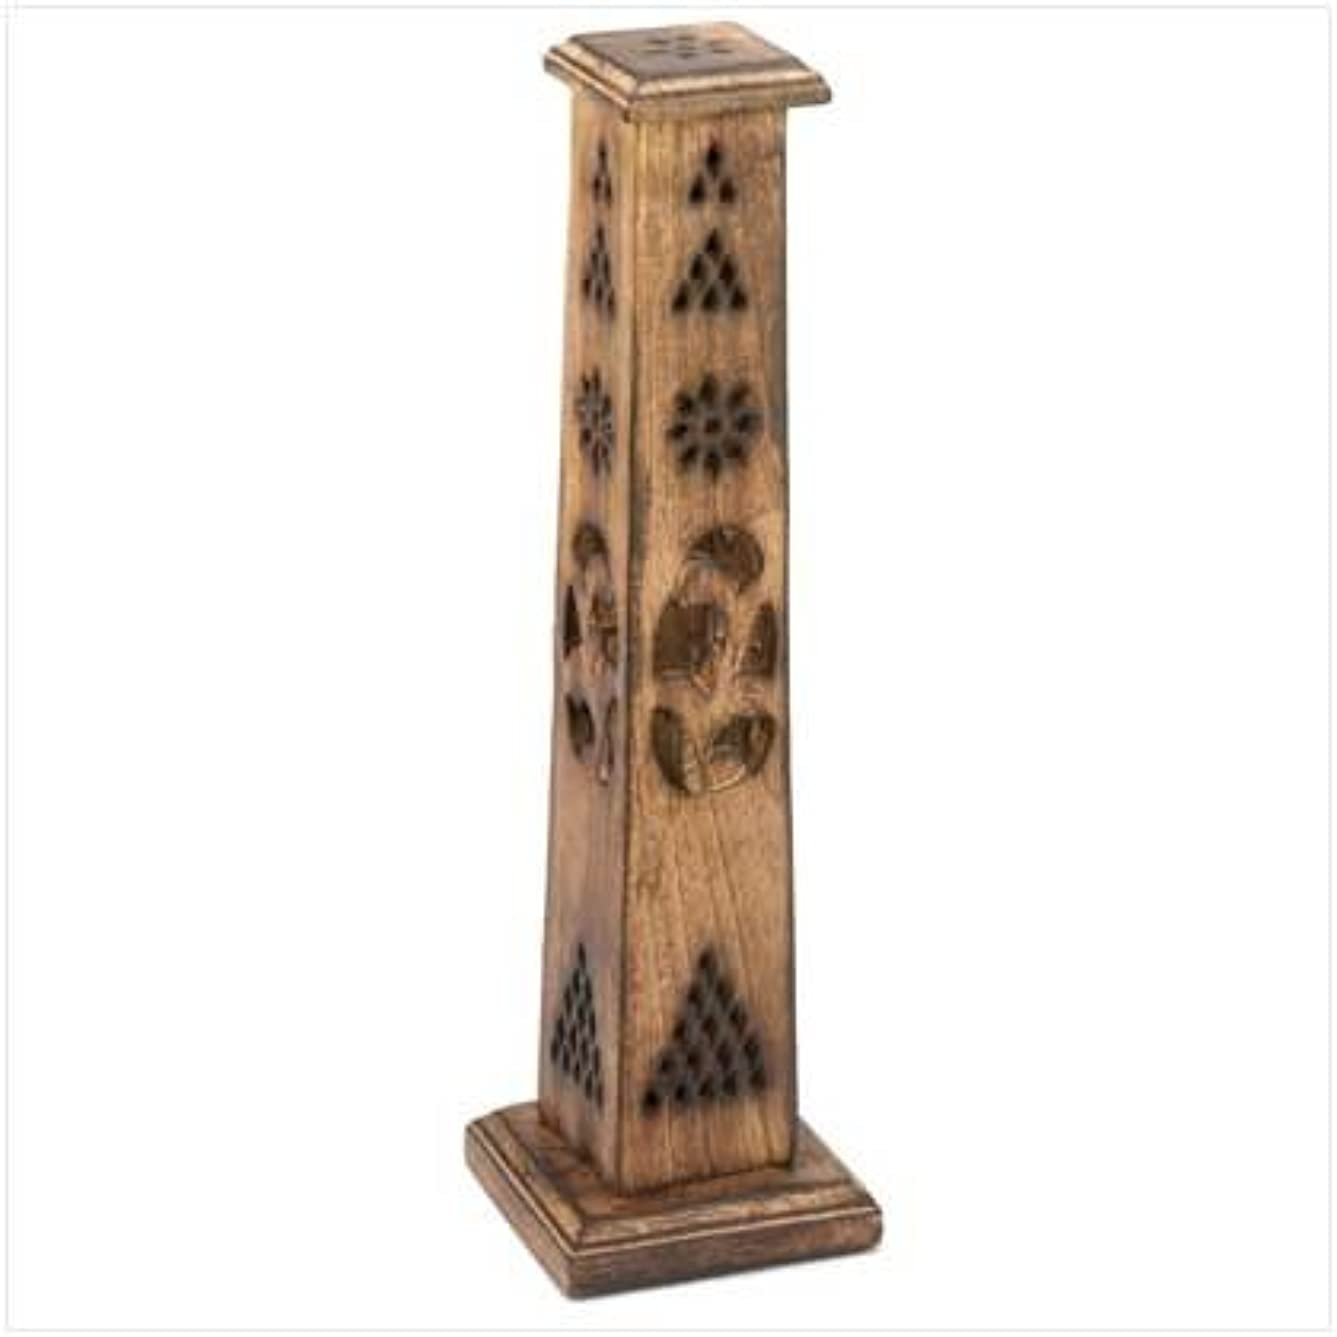 壊れた農業協力的Wooden Artisan Decor Incense Stick Holder Tower Stand